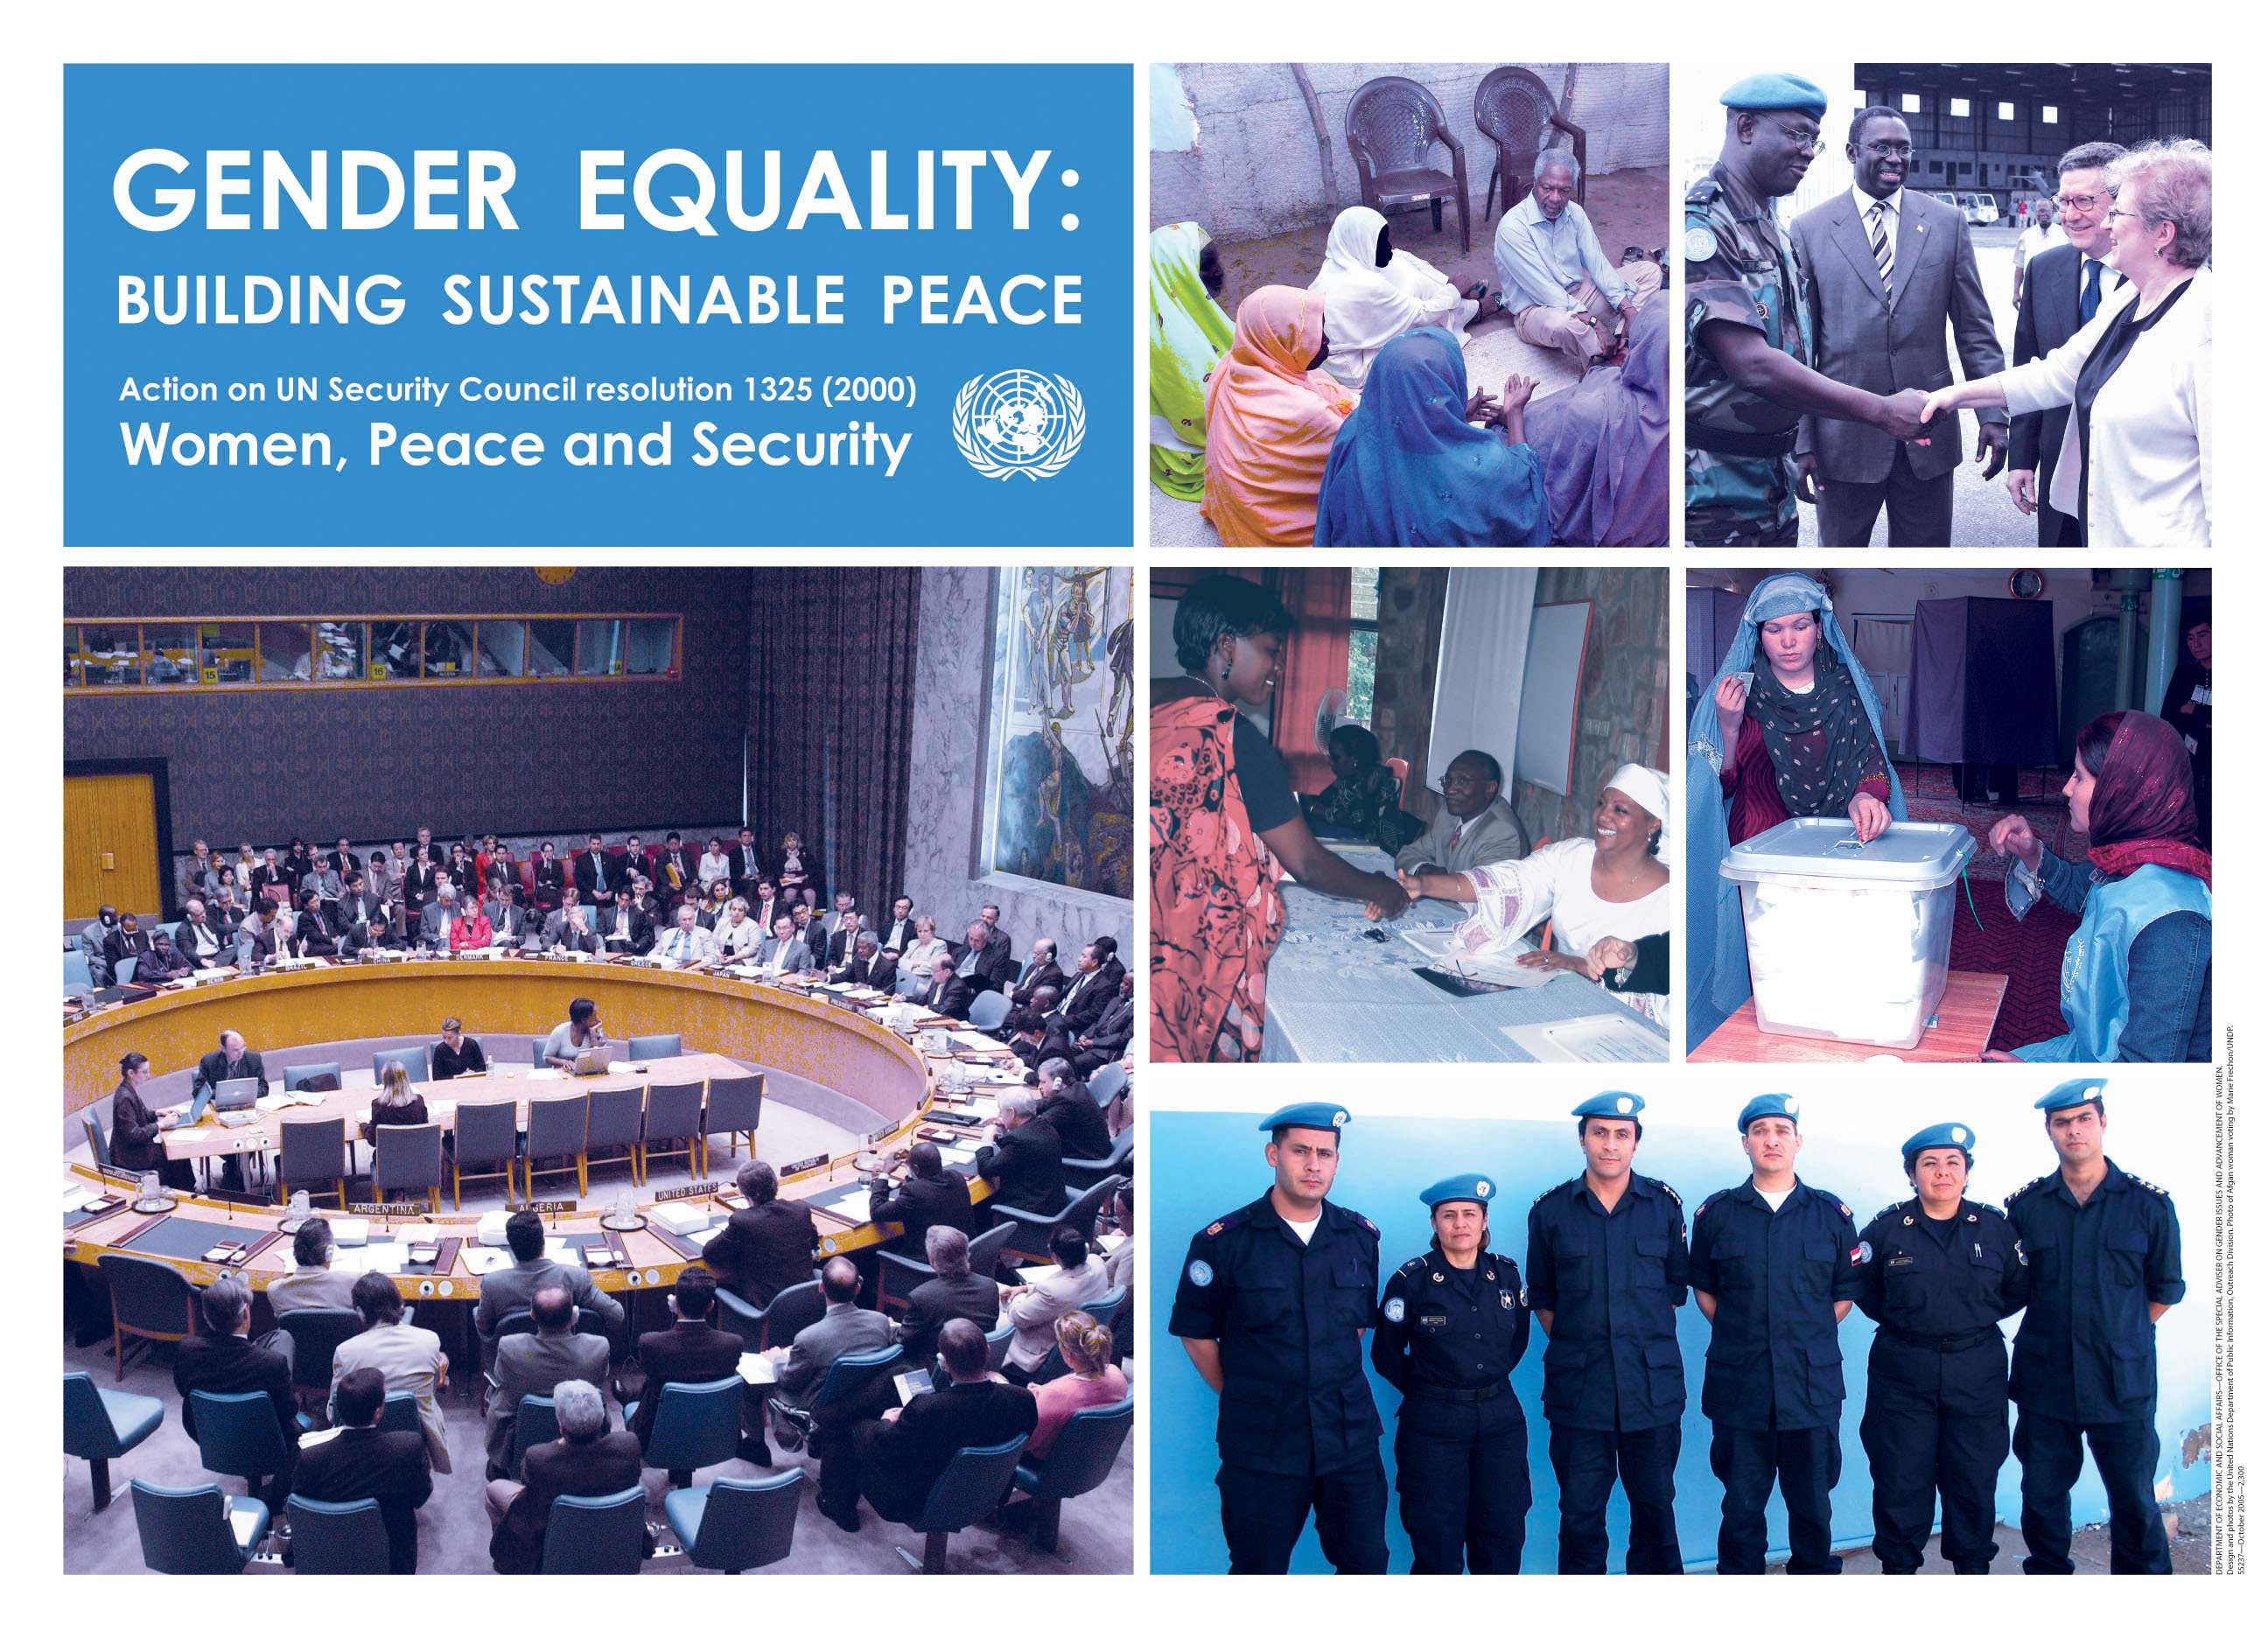 "In the Photo: Poster ""Gender Equality: Building Sustainable Peace"". Photo Credit: http://www.un.org/womenwatch/ianwge/taskforces/wps/poster-english.pdf"